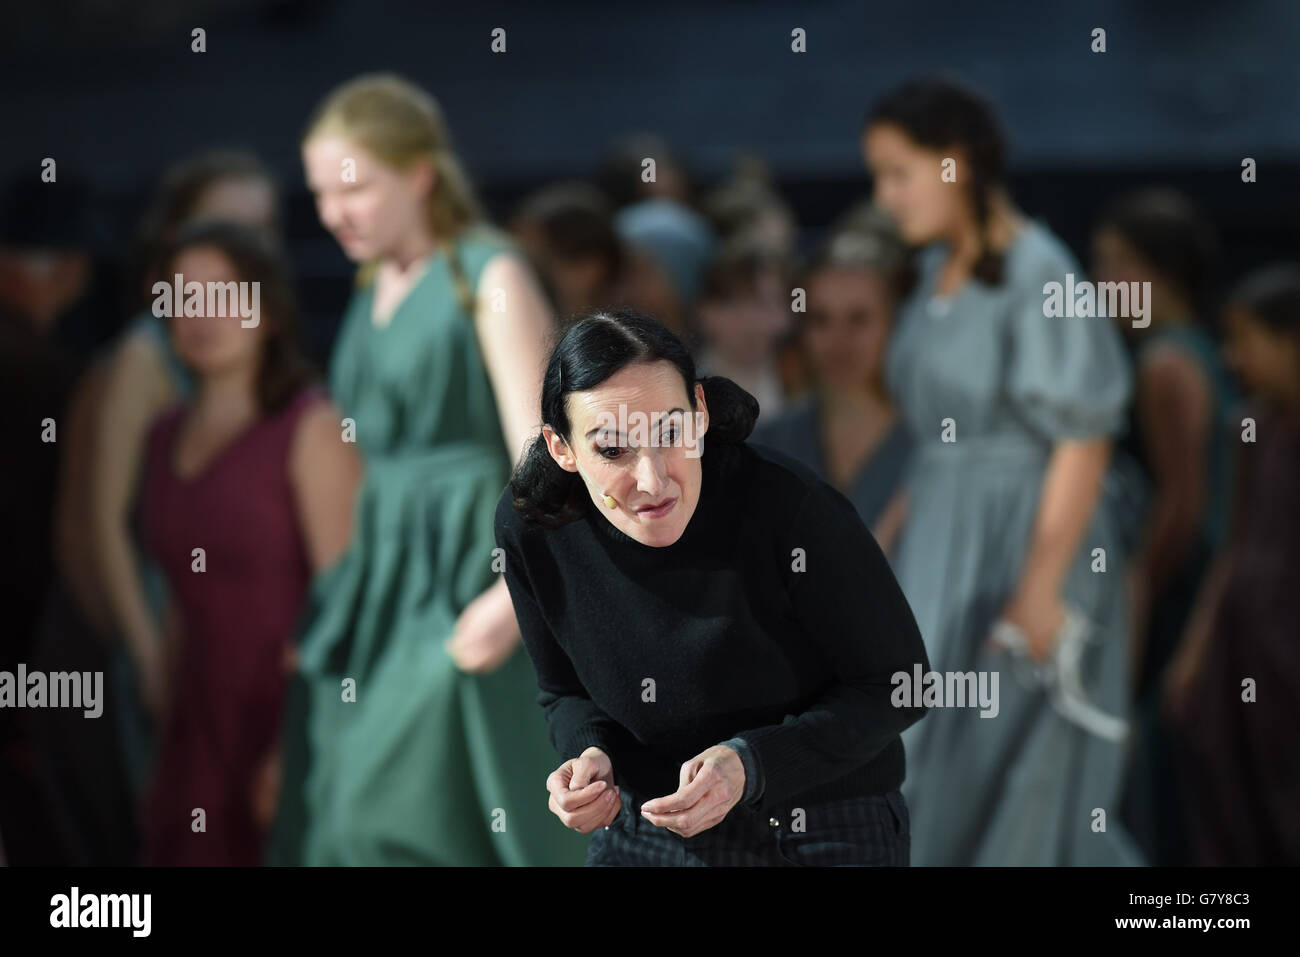 Actress Viola von der Burg as Narrator/Johanna/Godfather performs during a photo rehearsal of a scene of the play - Stock Image